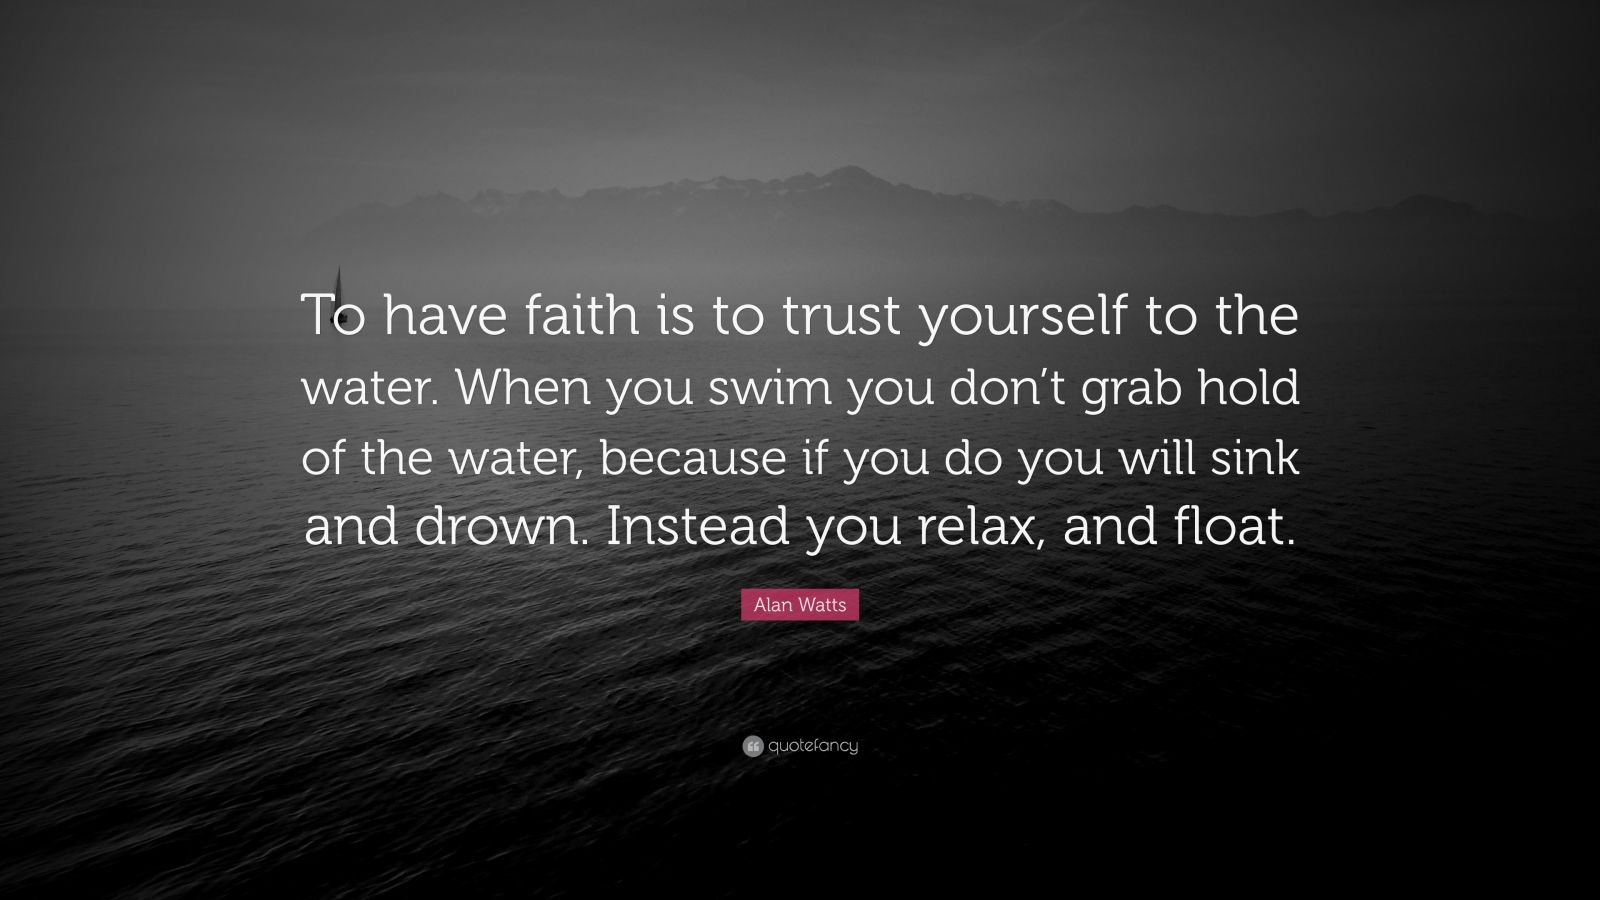 """Alan Watts Quote: """"To have faith is to trust yourself to the water. When you swim you don't grab hold of the water, because if you do you will sink and drown. Instead you relax, and float."""""""